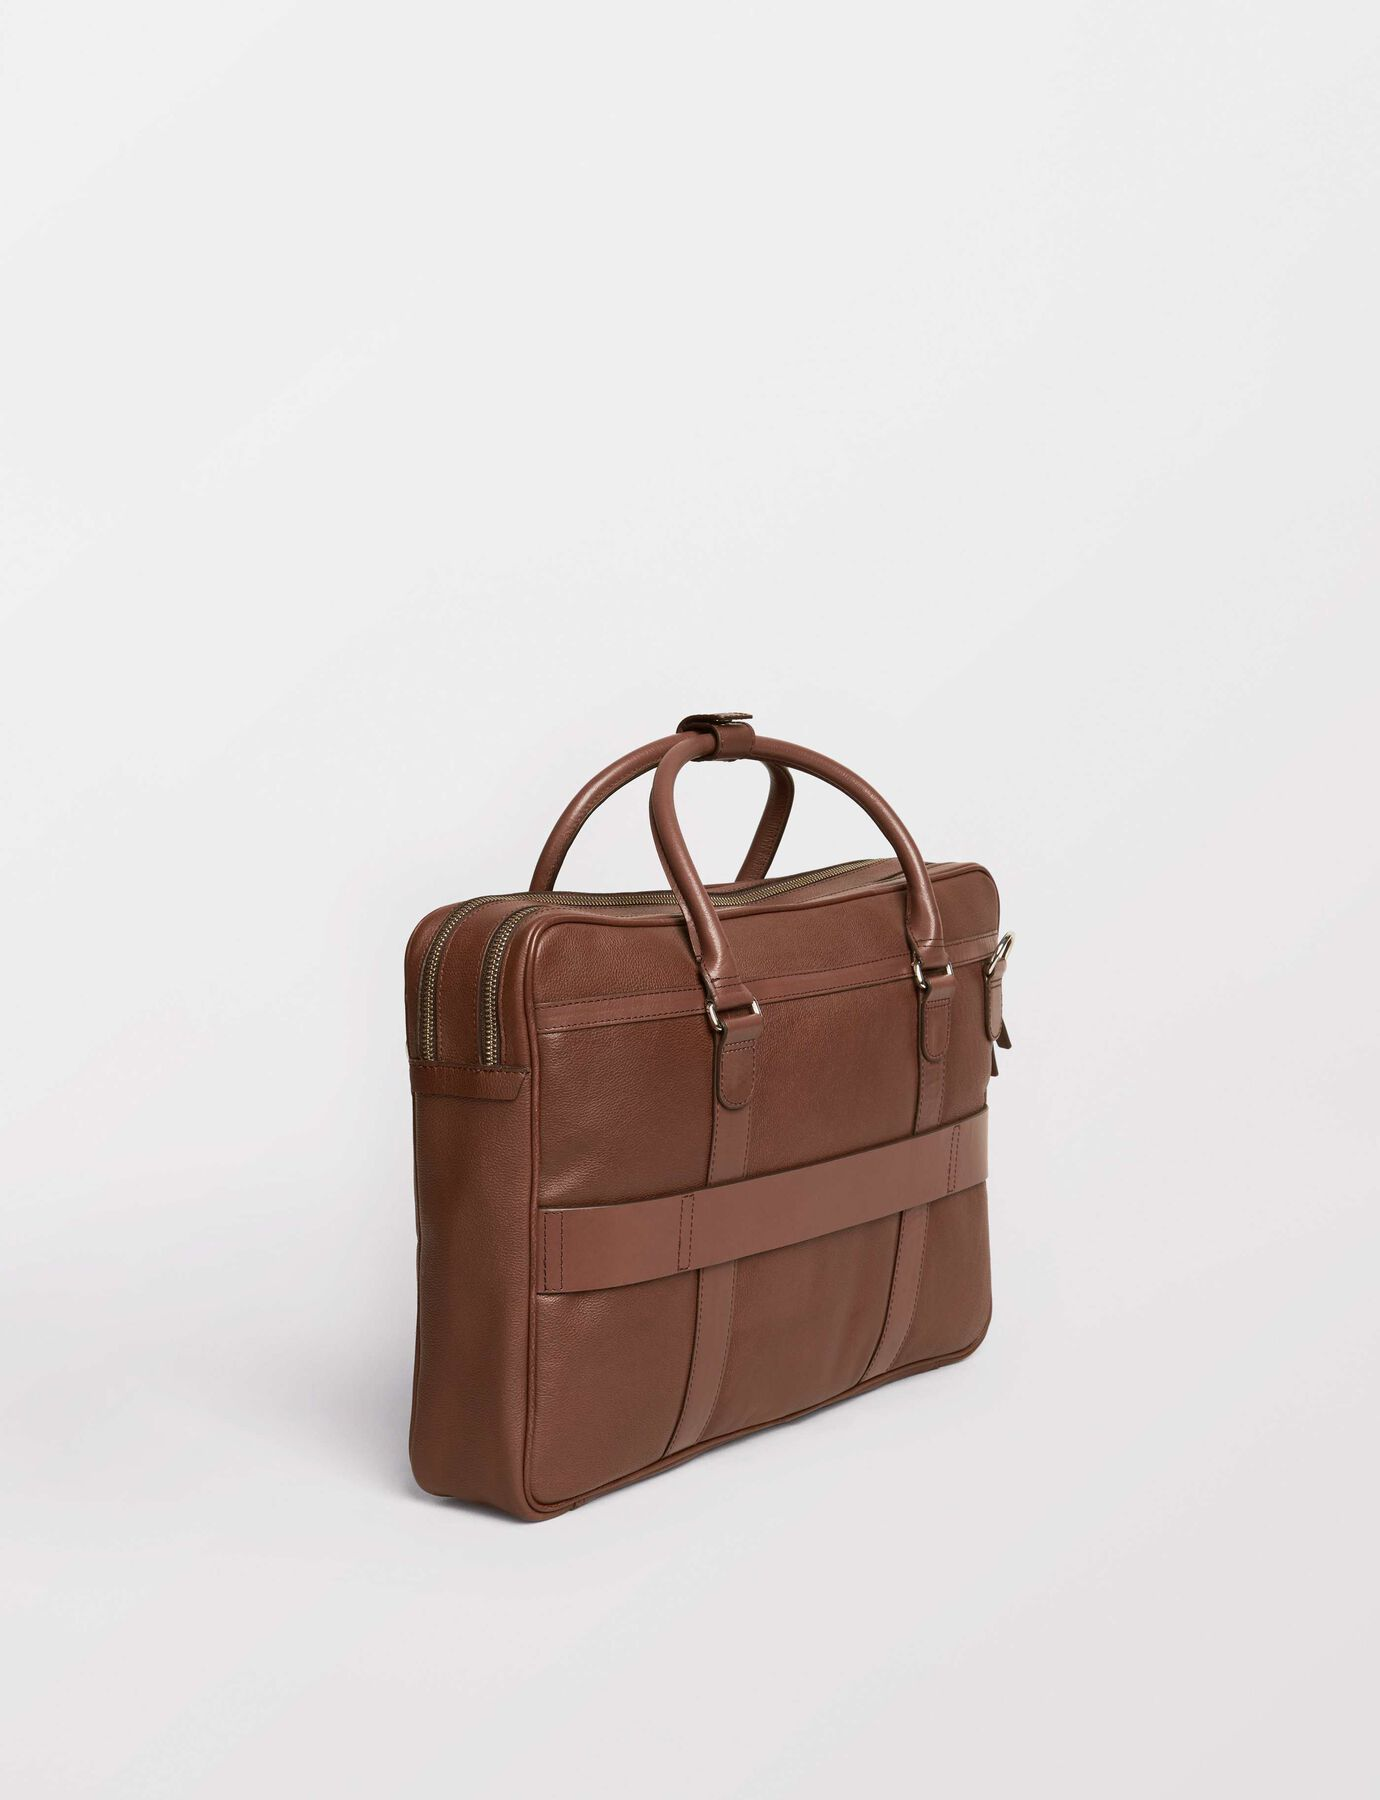 Printel Briefcase in Medium Brown from Tiger of Sweden